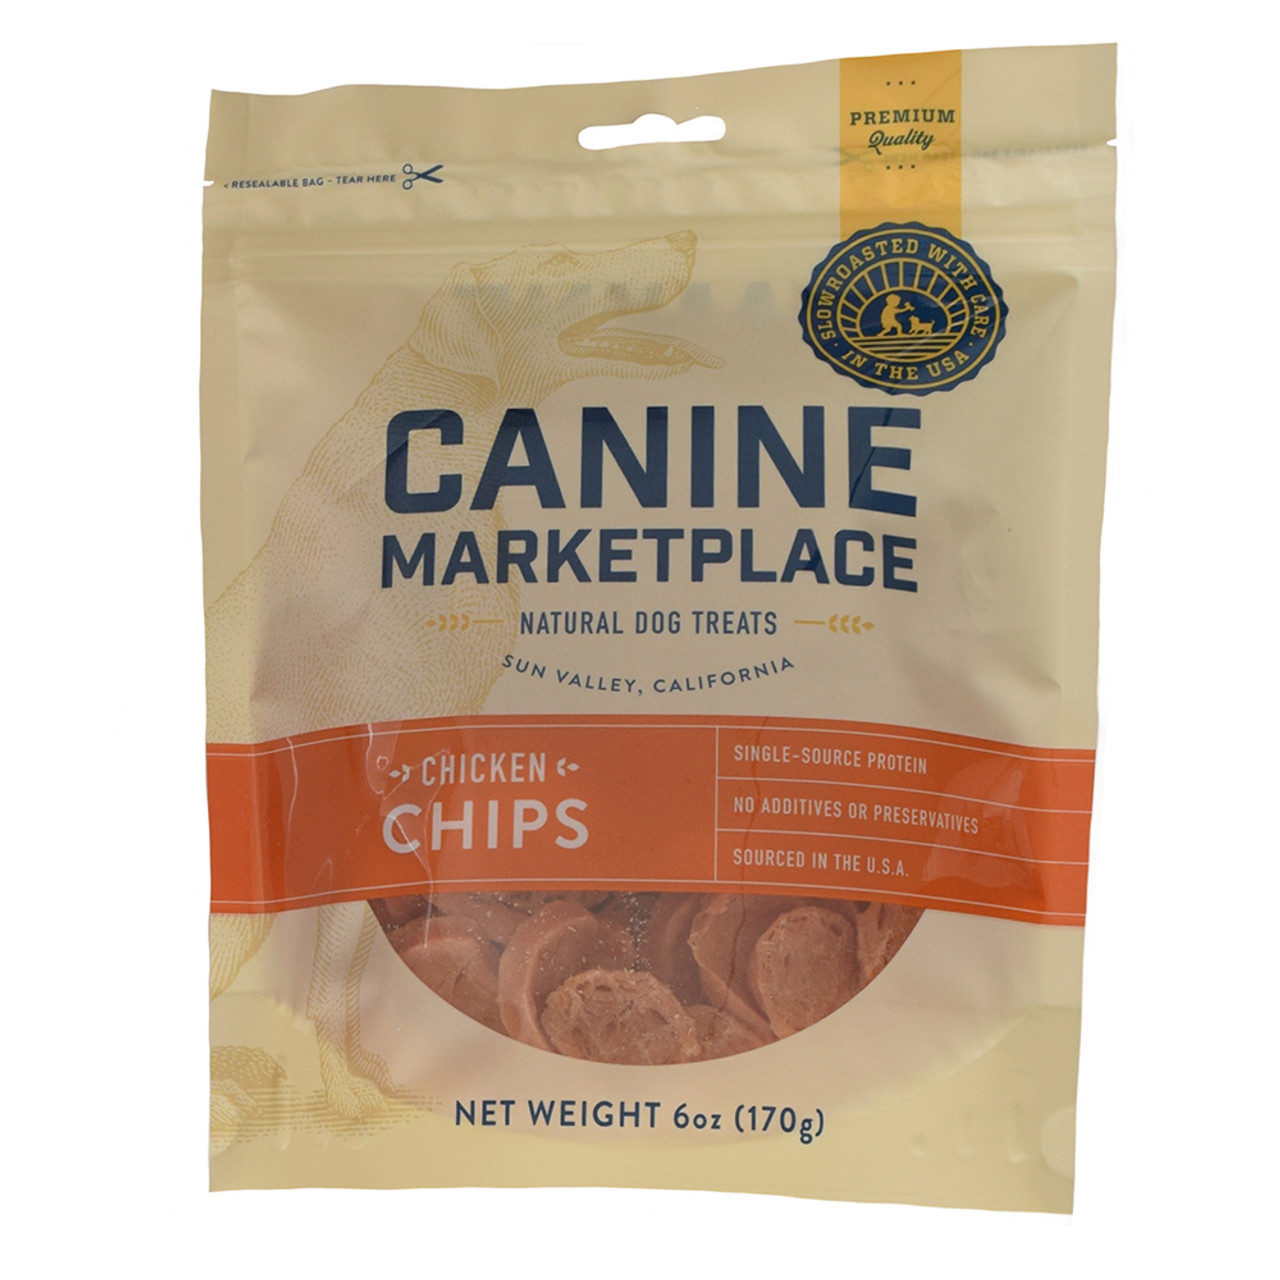 Canine Marketplace Chicken Chips Natural Dog Treats